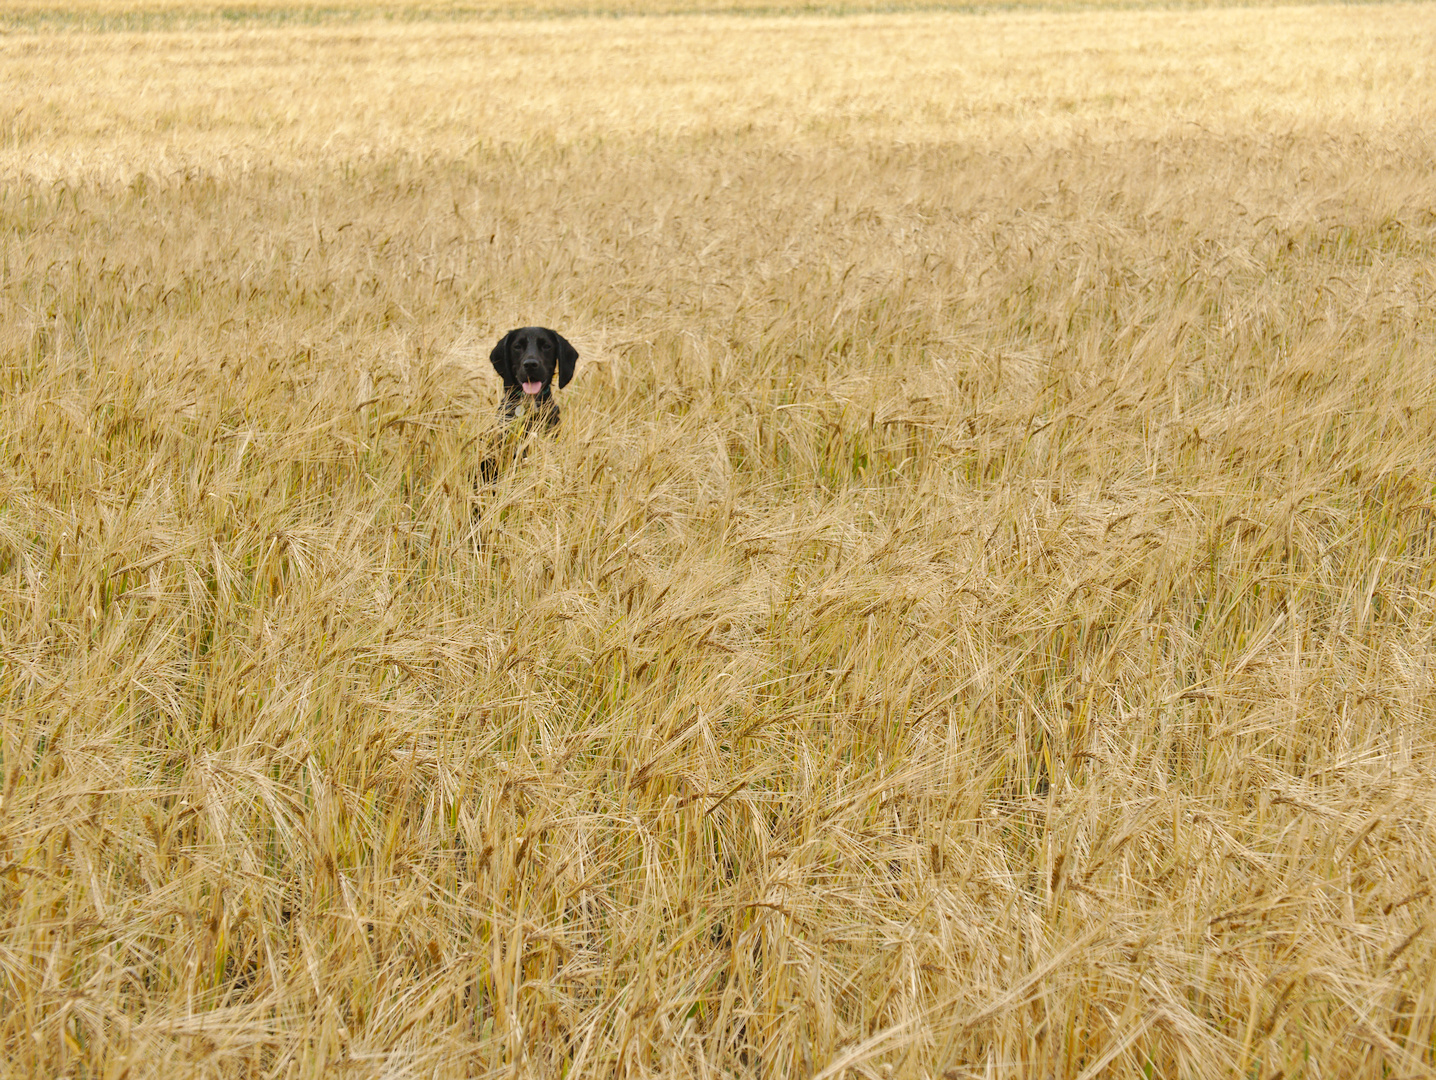 otter sat in a wheat field